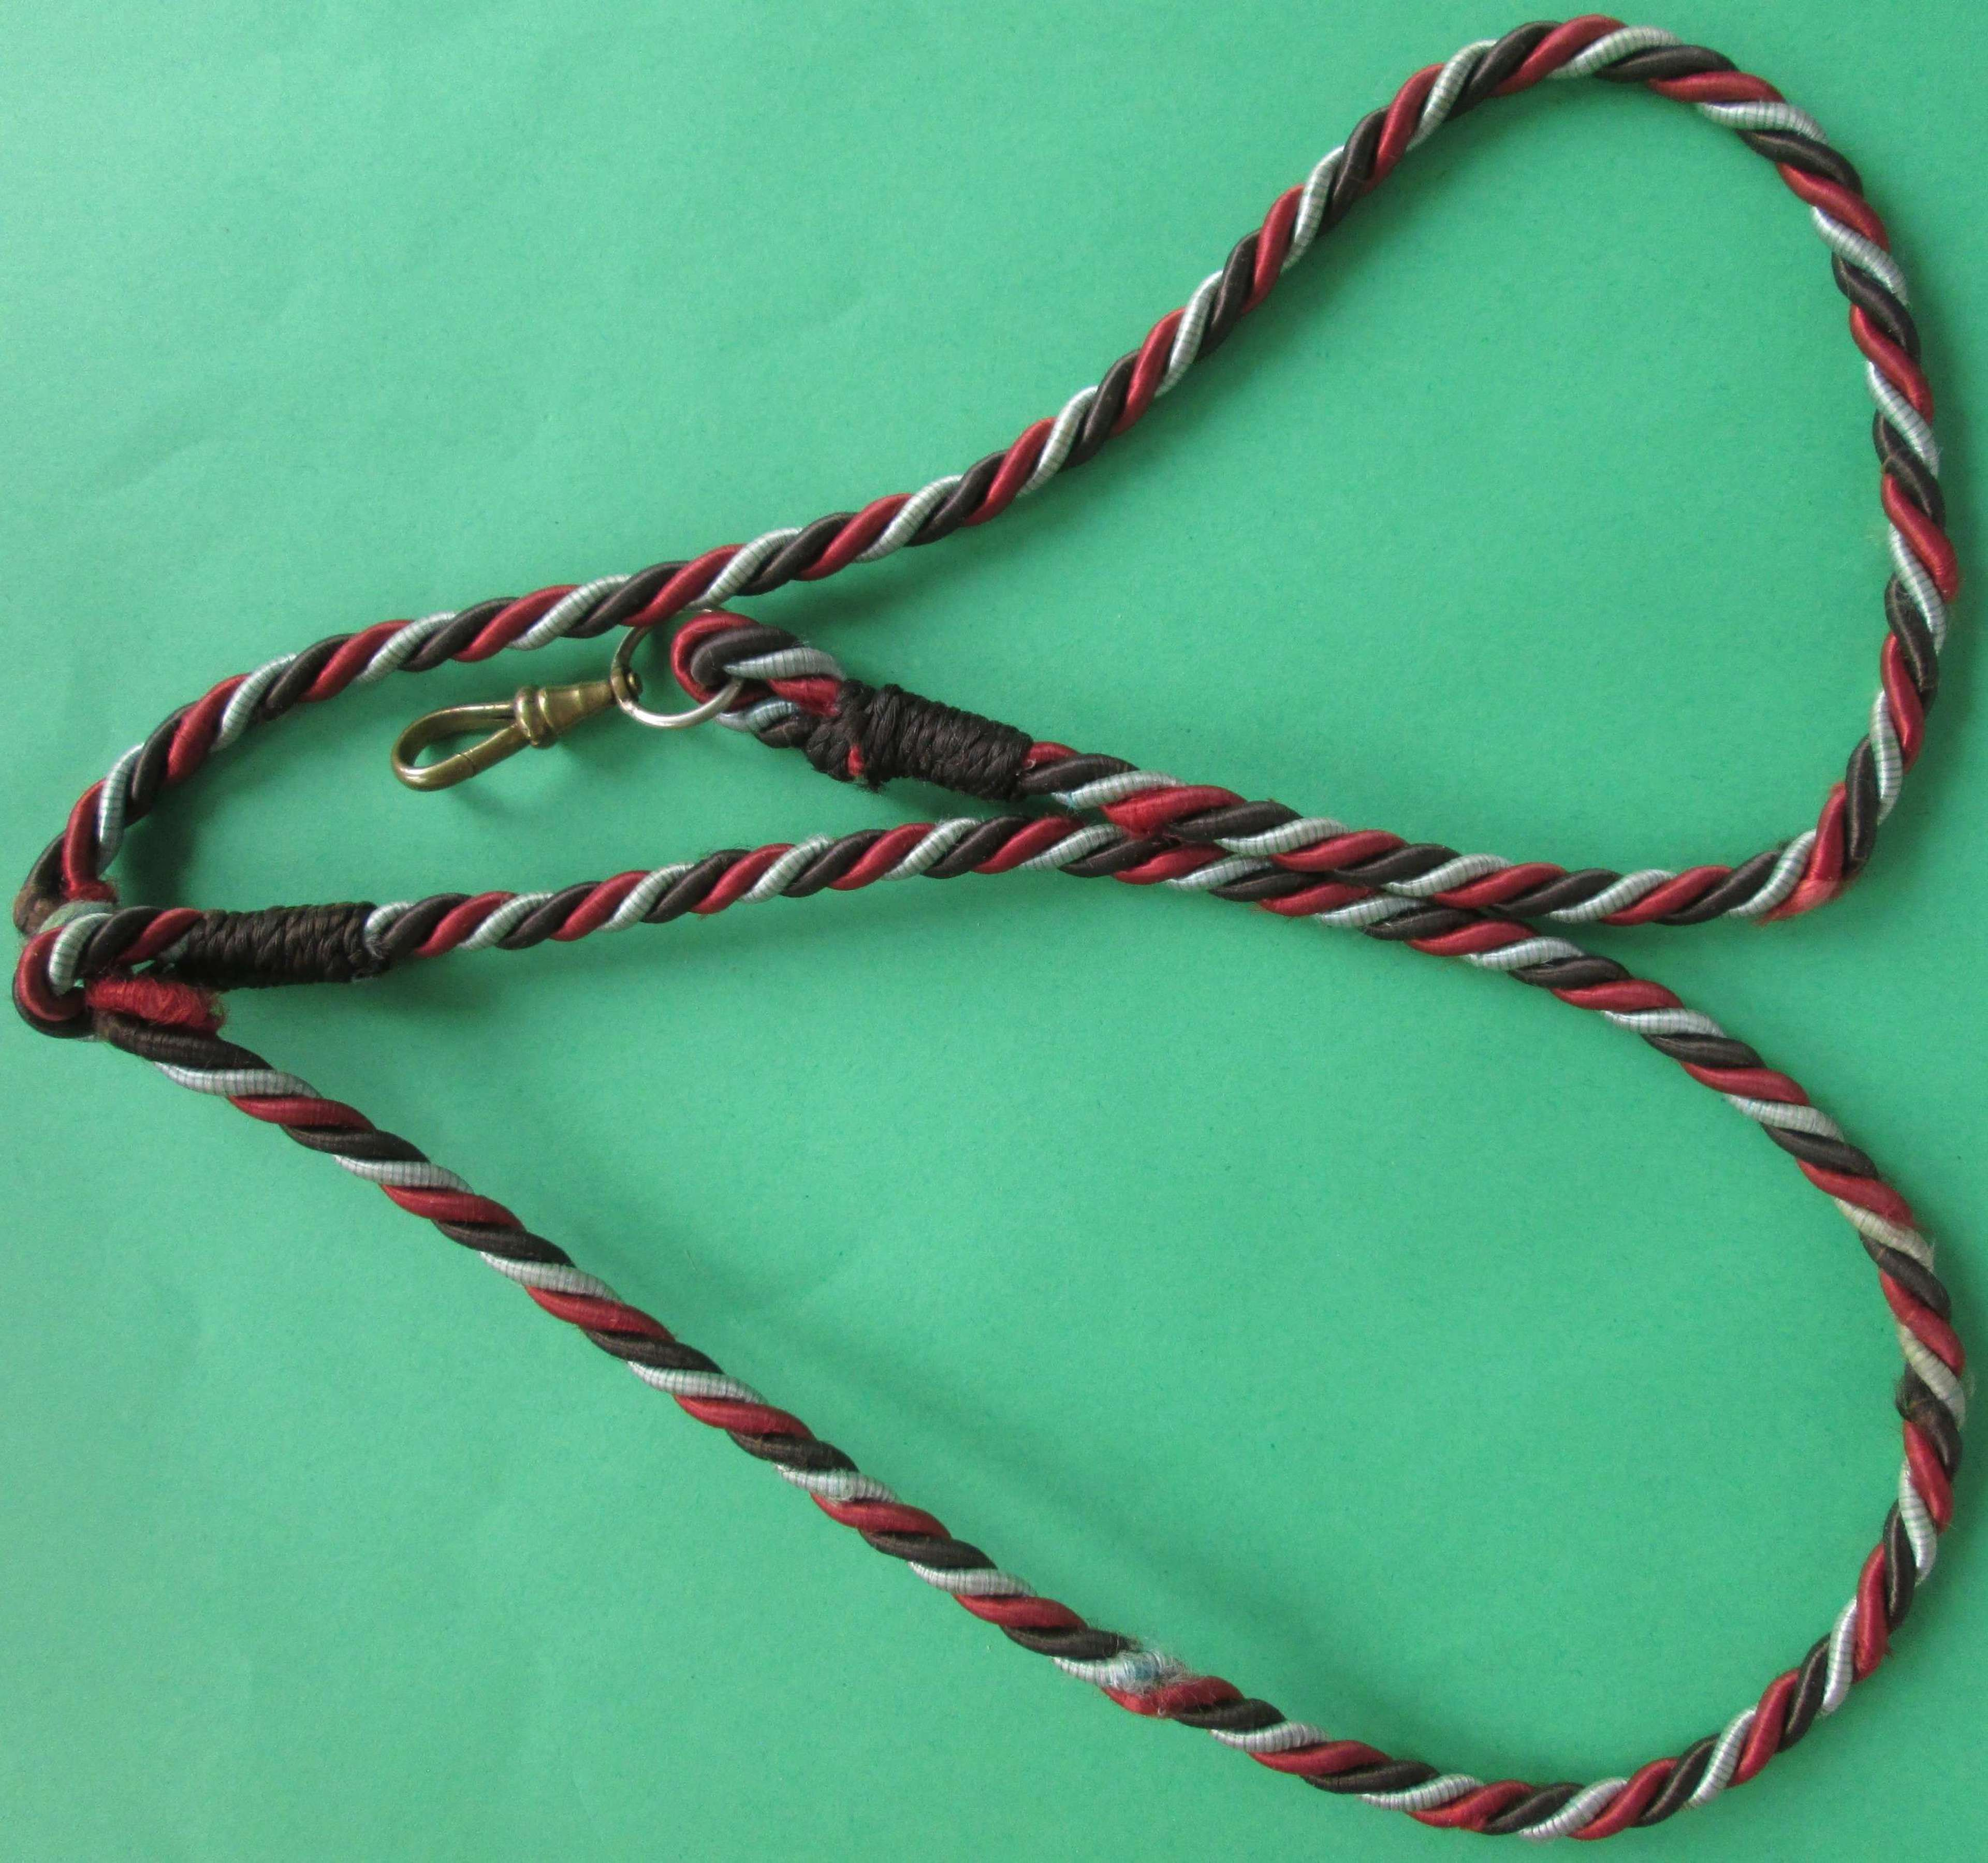 AN OFFICER'S LANYARD FOR THE AUXILLARY TERRITORIAL SERVICE